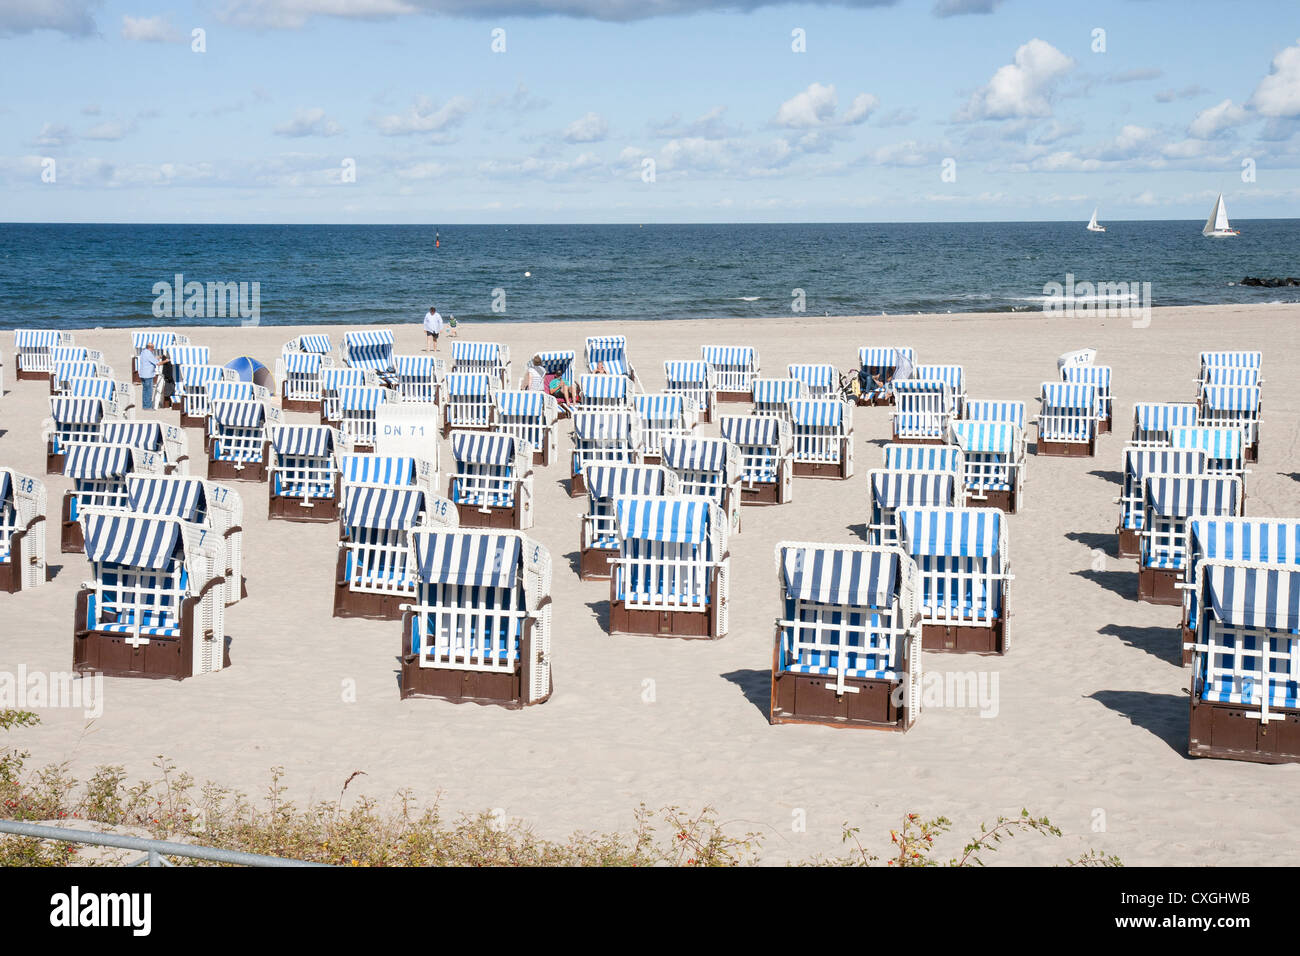 Kuhlungsborn Ost, Germany with beach deckchairs or Strandkorb and the Baltic - Stock Image